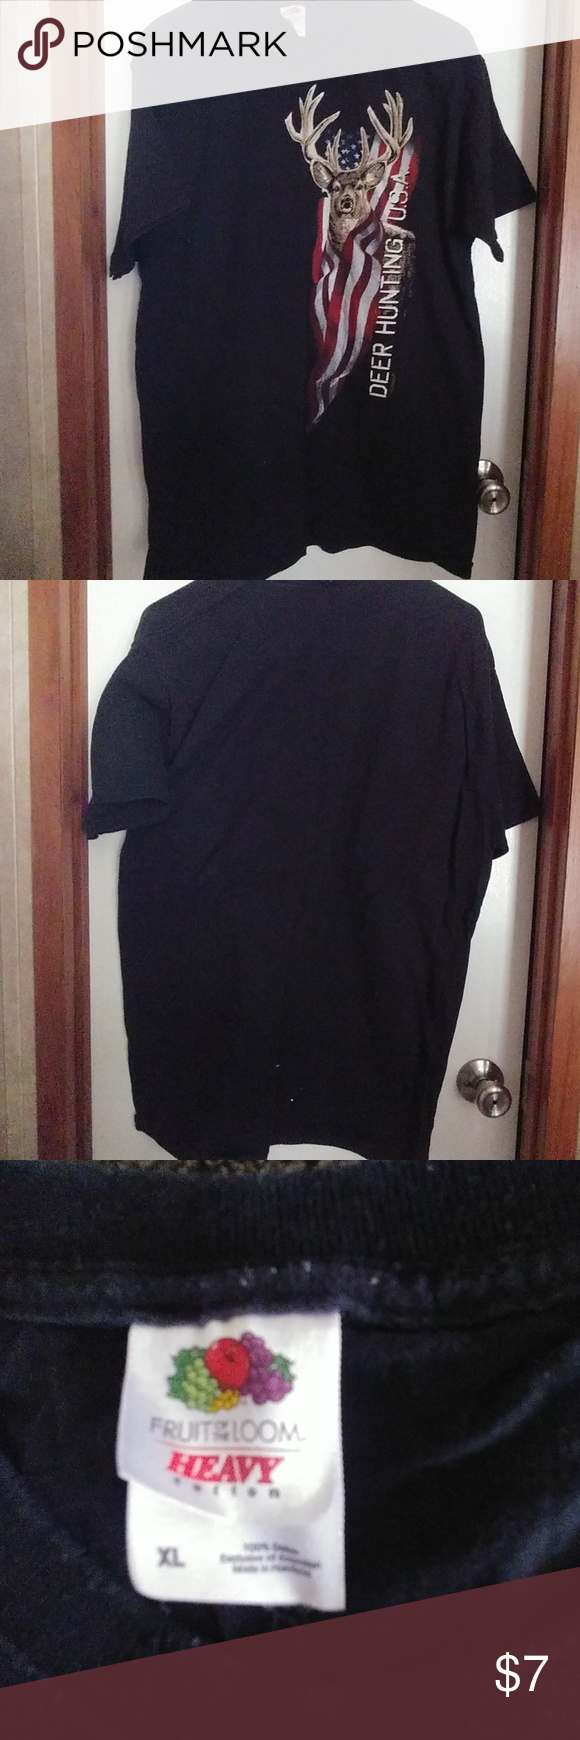 Fruit of the Loom Heavy Cotton size XL TShirt Clothes